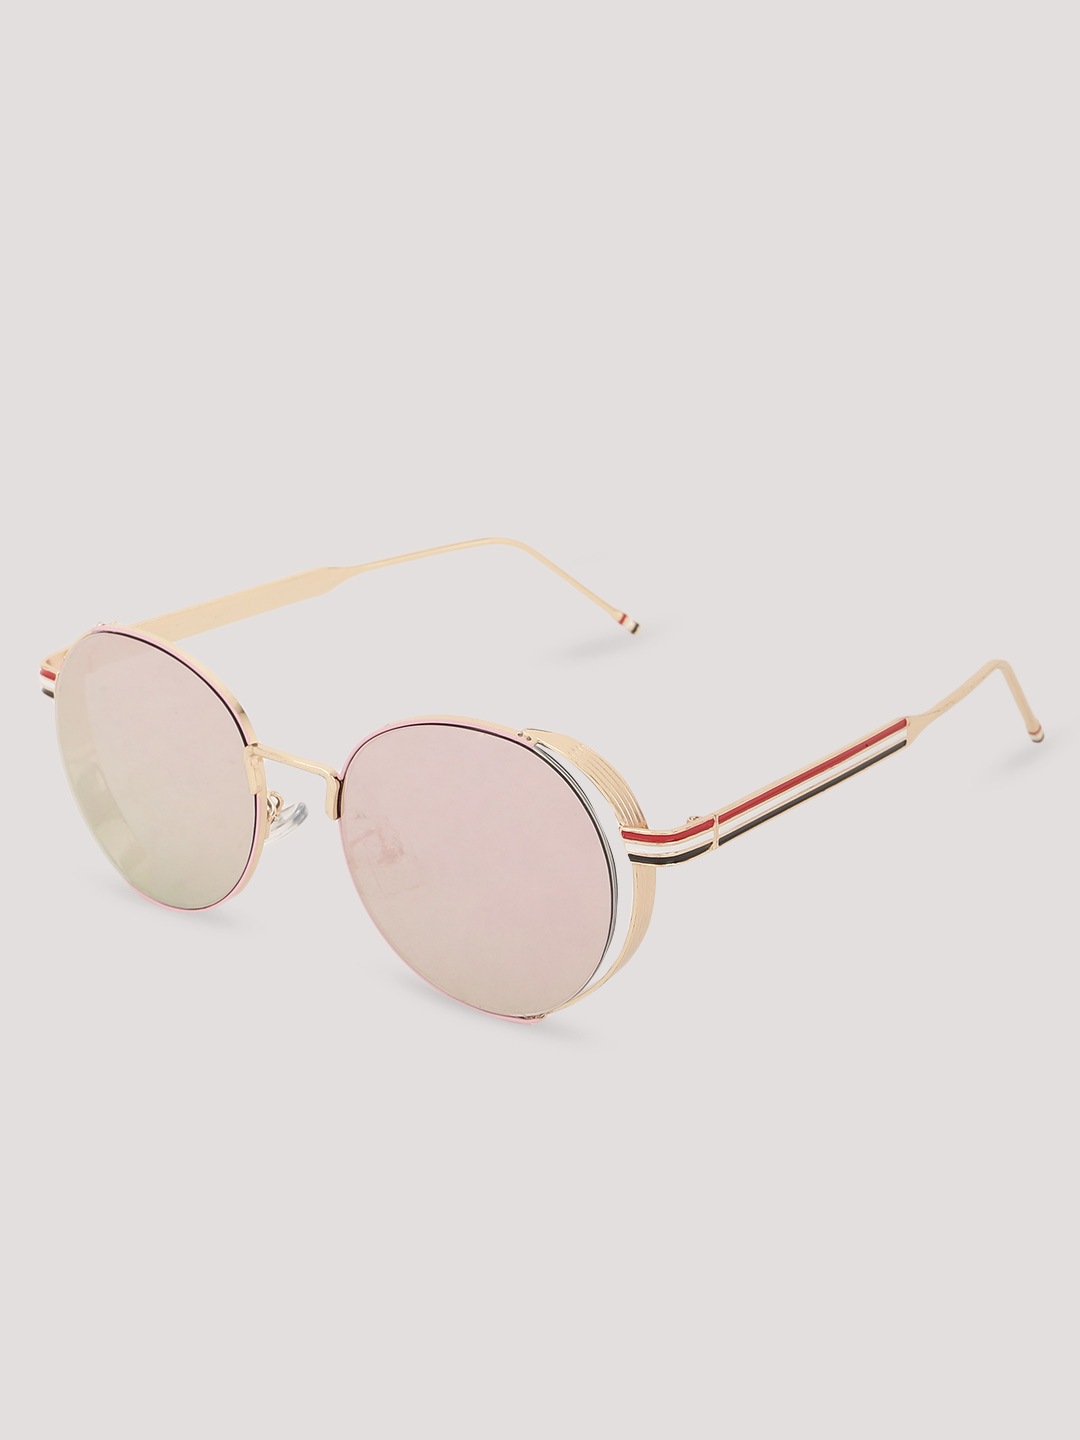 Sneak-a-Peek Pink Round Sunglasses 1